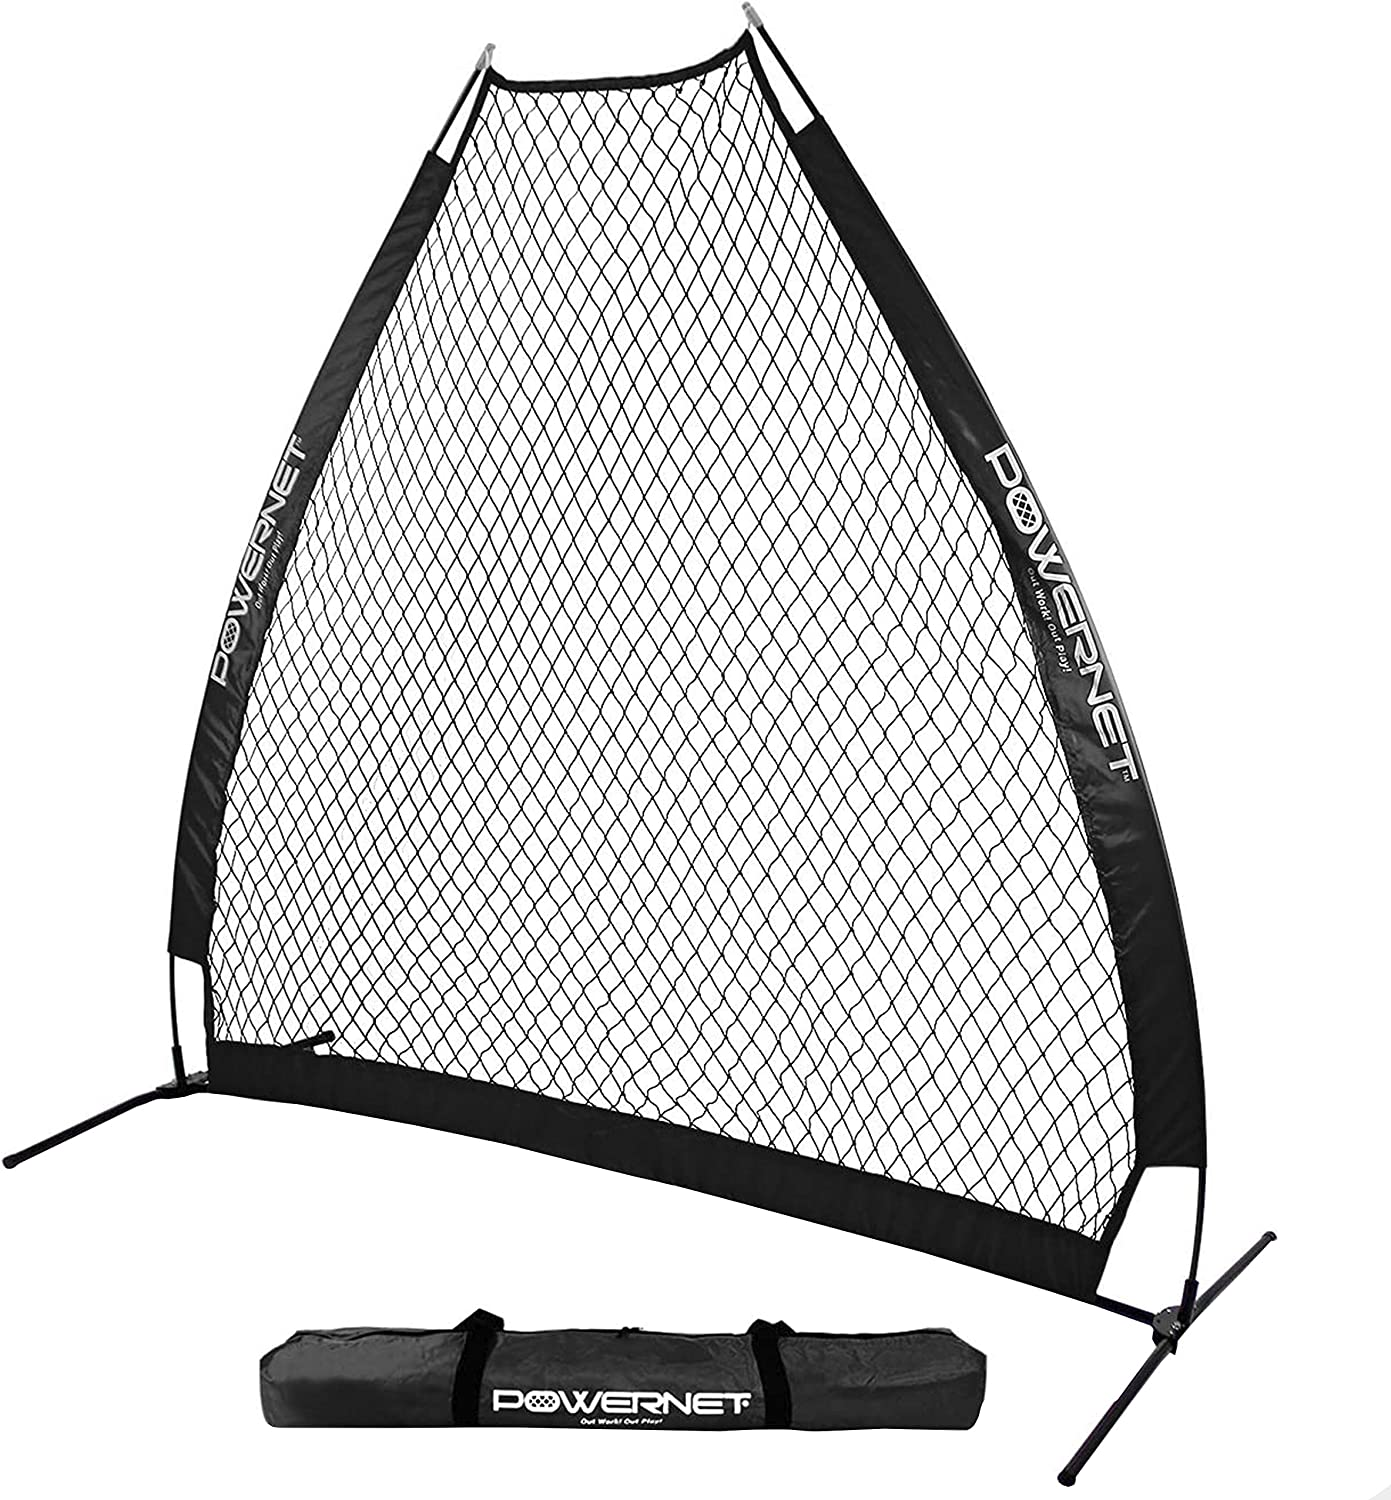 PowerNet Portable Baseball Pitching Screen 7 X 7 Bow Style